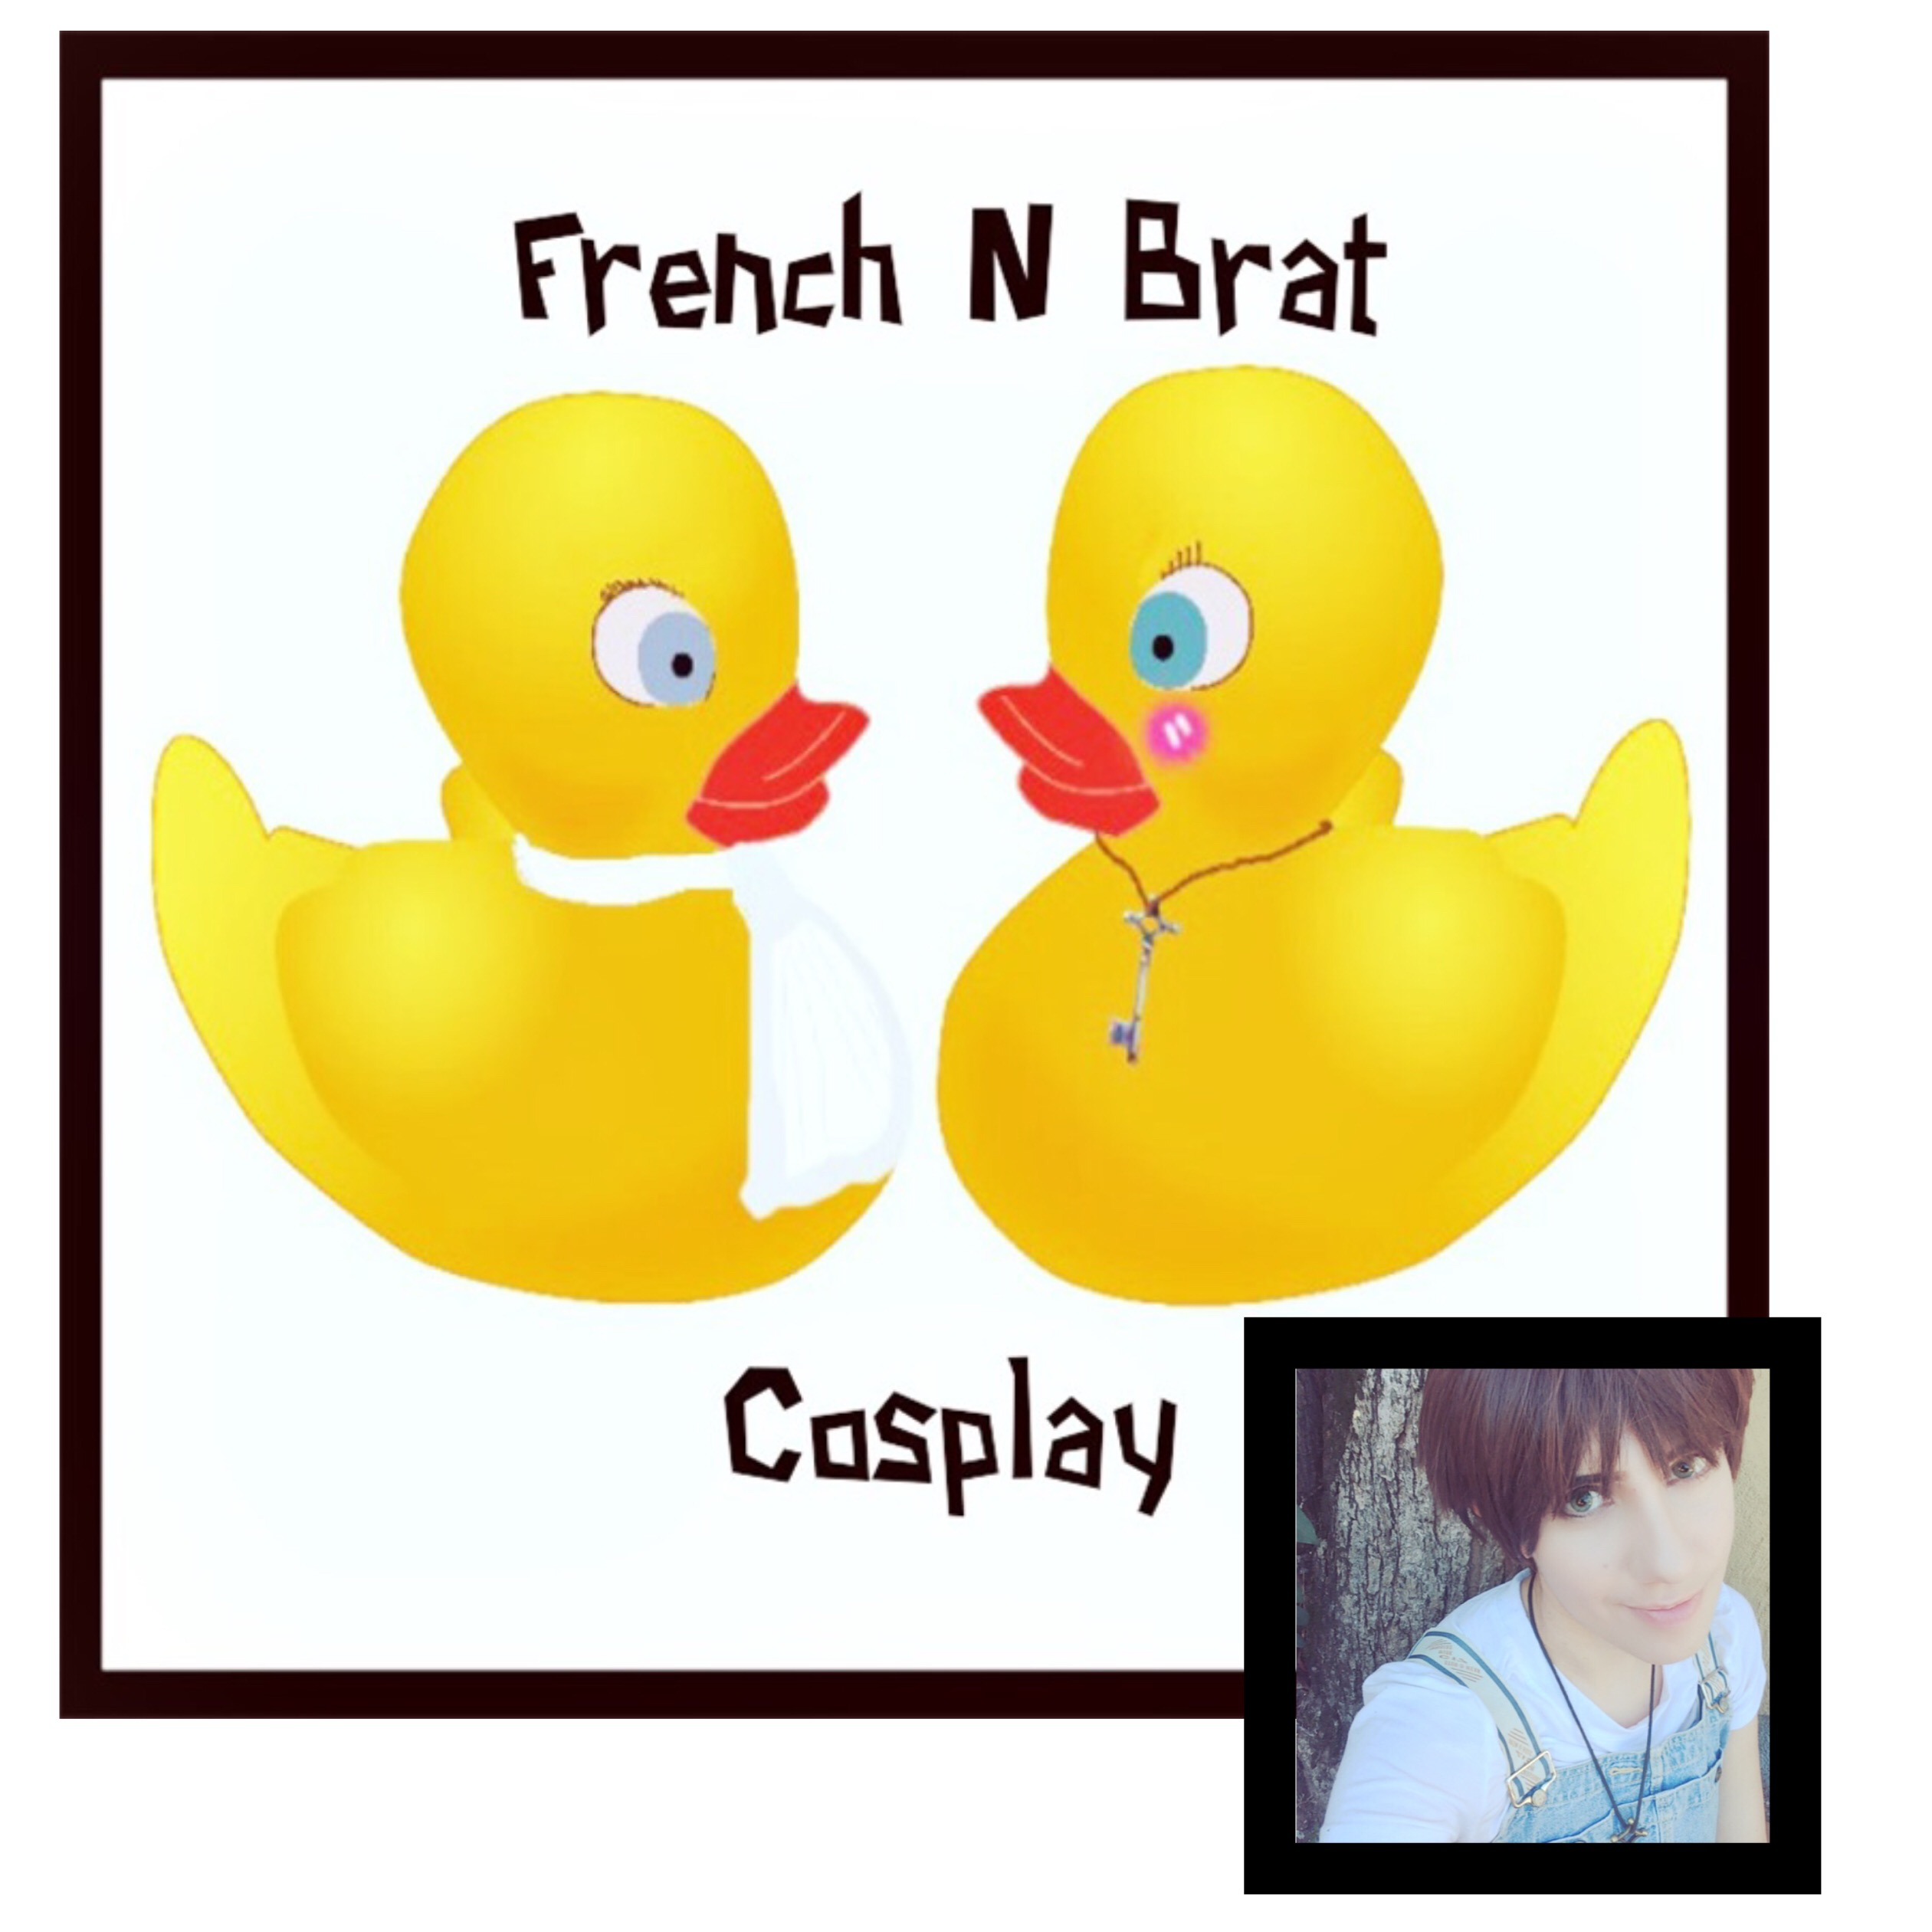 French N Brat Cosplay